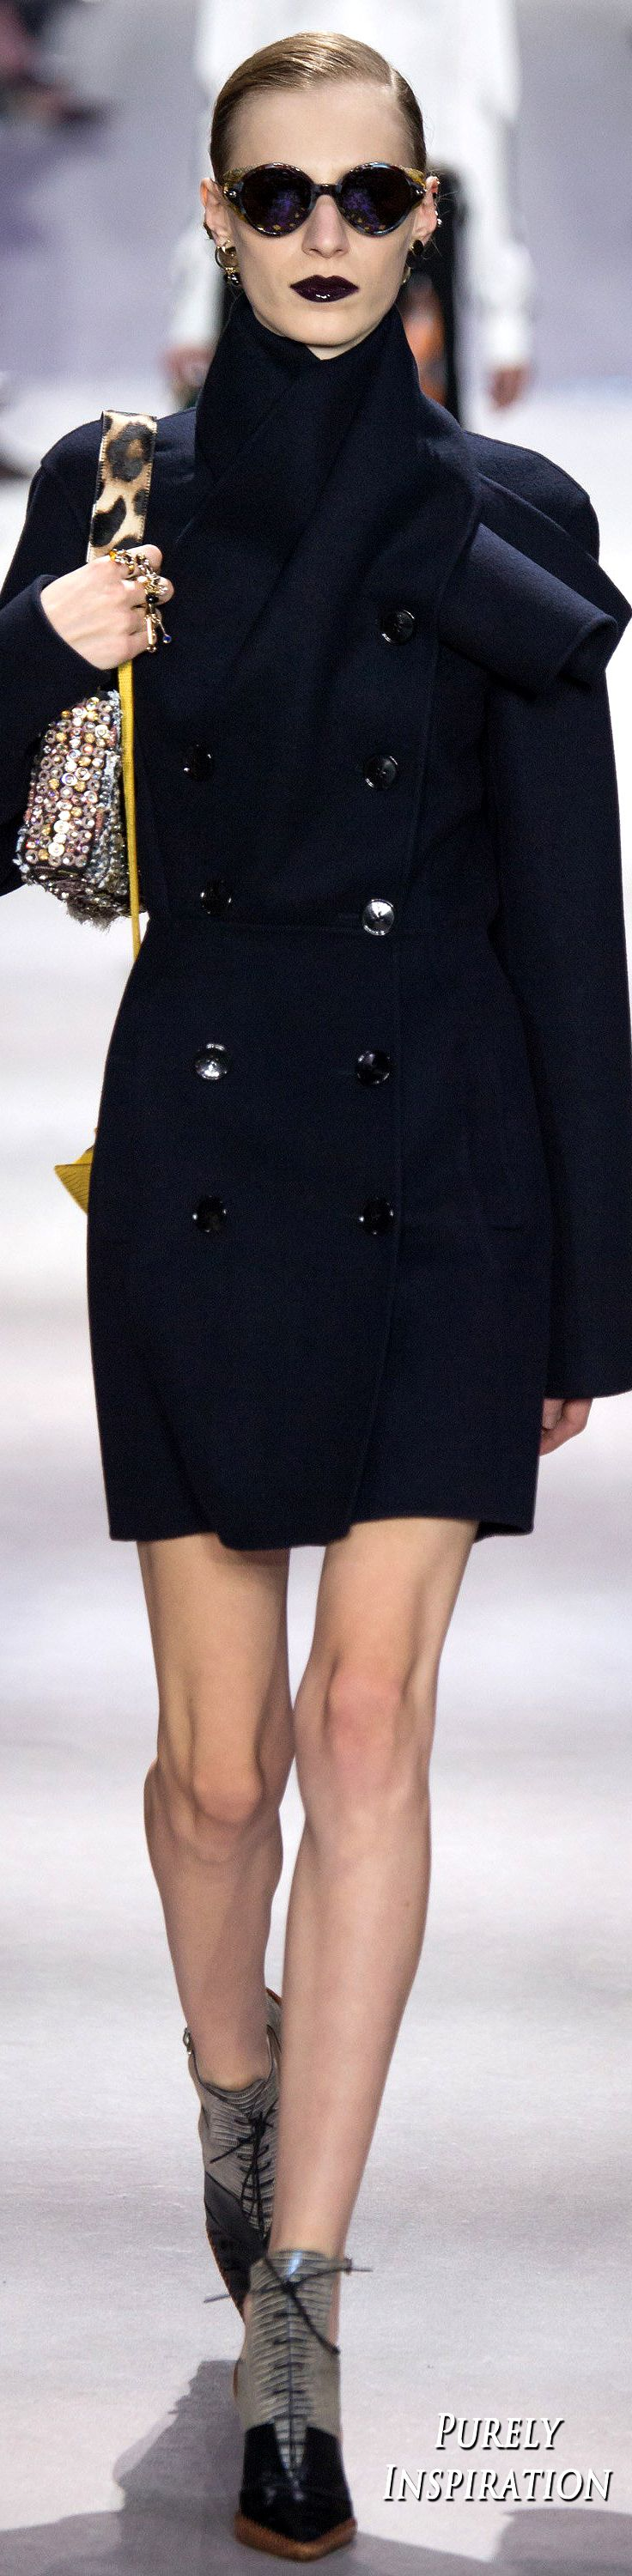 Christian Dior FW2016 Women's Fashion RTW | Purely Inspiration